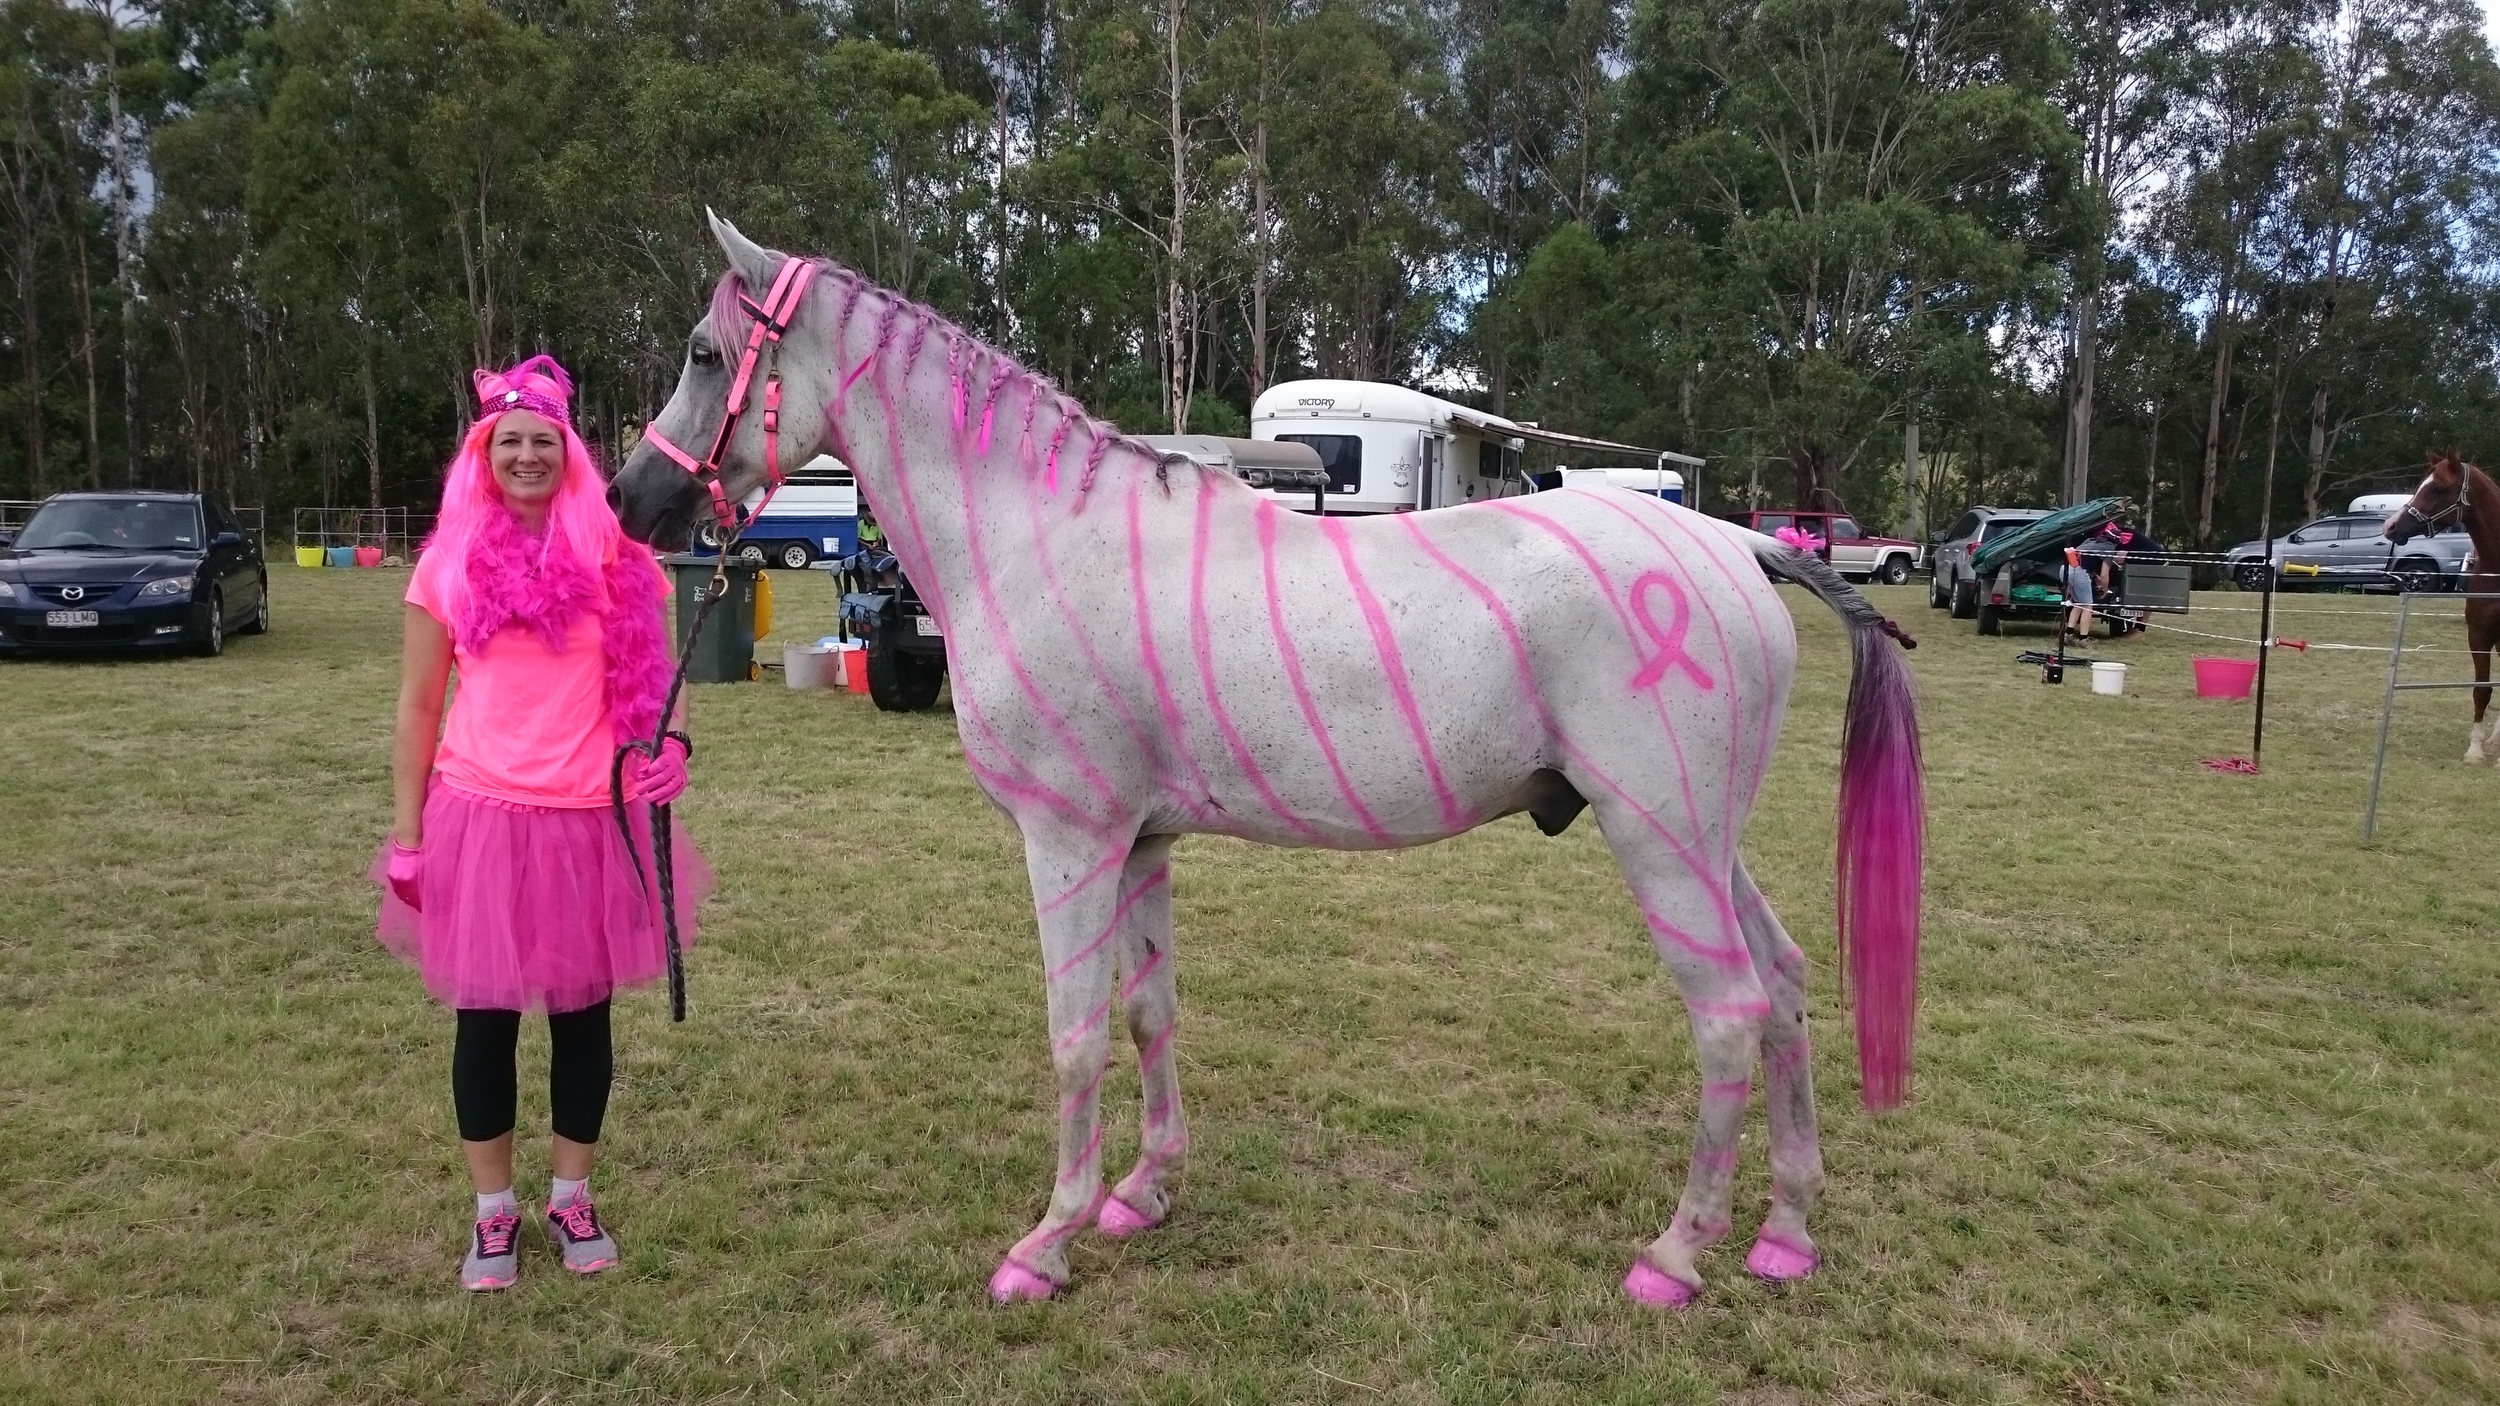 """El SAREM GLYDE - His previous owner passed away because of cancer and the family gave him to me, very special that he competed in the ride! Sabrina Stephens.         Normal   0           false   false   false     EN-AU   ZH-TW   AR-SA                                                                                                                                                                                                                                                                                                                                                                                                                                                                                                                                                                                                                                                                                                                                                                                                                                                                     /* Style Definitions */  table.MsoNormalTable {mso-style-name:""""Table Normal""""; mso-tstyle-rowband-size:0; mso-tstyle-colband-size:0; mso-style-noshow:yes; mso-style-priority:99; mso-style-parent:""""""""; mso-padding-alt:0cm 5.4pt 0cm 5.4pt; mso-para-margin:0cm; mso-para-margin-bottom:.0001pt; mso-pagination:widow-orphan; font-size:11.0pt; font-family:""""Calibri"""",sans-serif; mso-ascii-font-family:Calibri; mso-ascii-theme-font:minor-latin; mso-hansi-font-family:Calibri; mso-hansi-theme-font:minor-latin;}"""